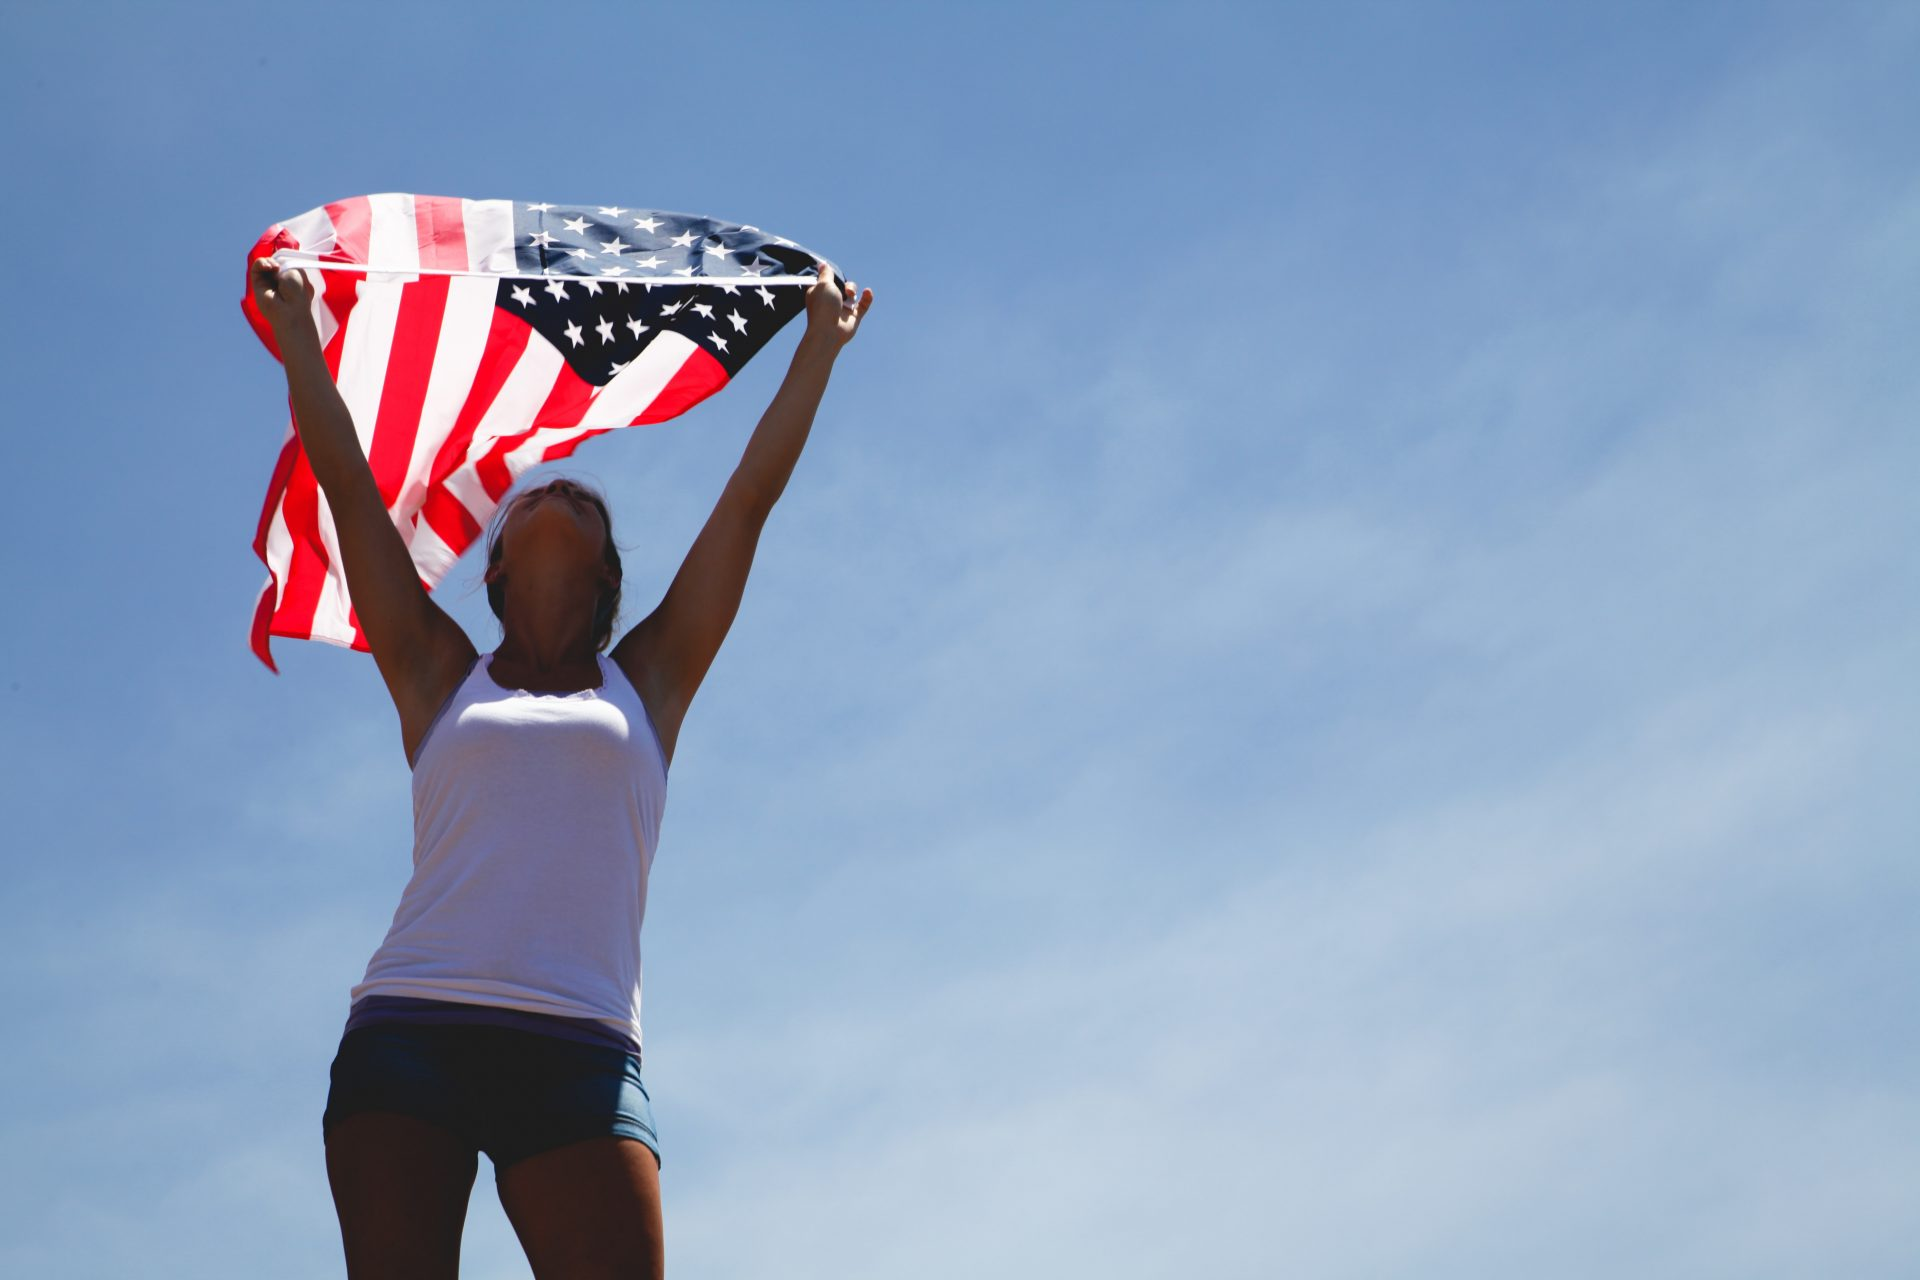 July 4th – A Great Day To Become Independent